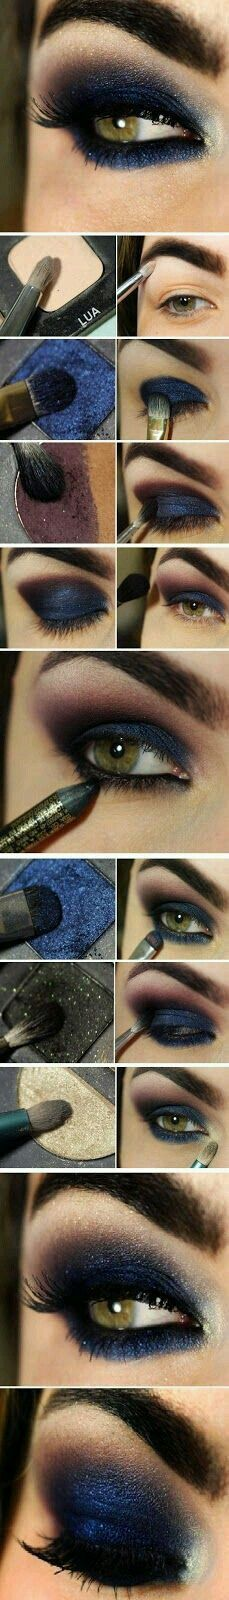 dark blue eyeshadow